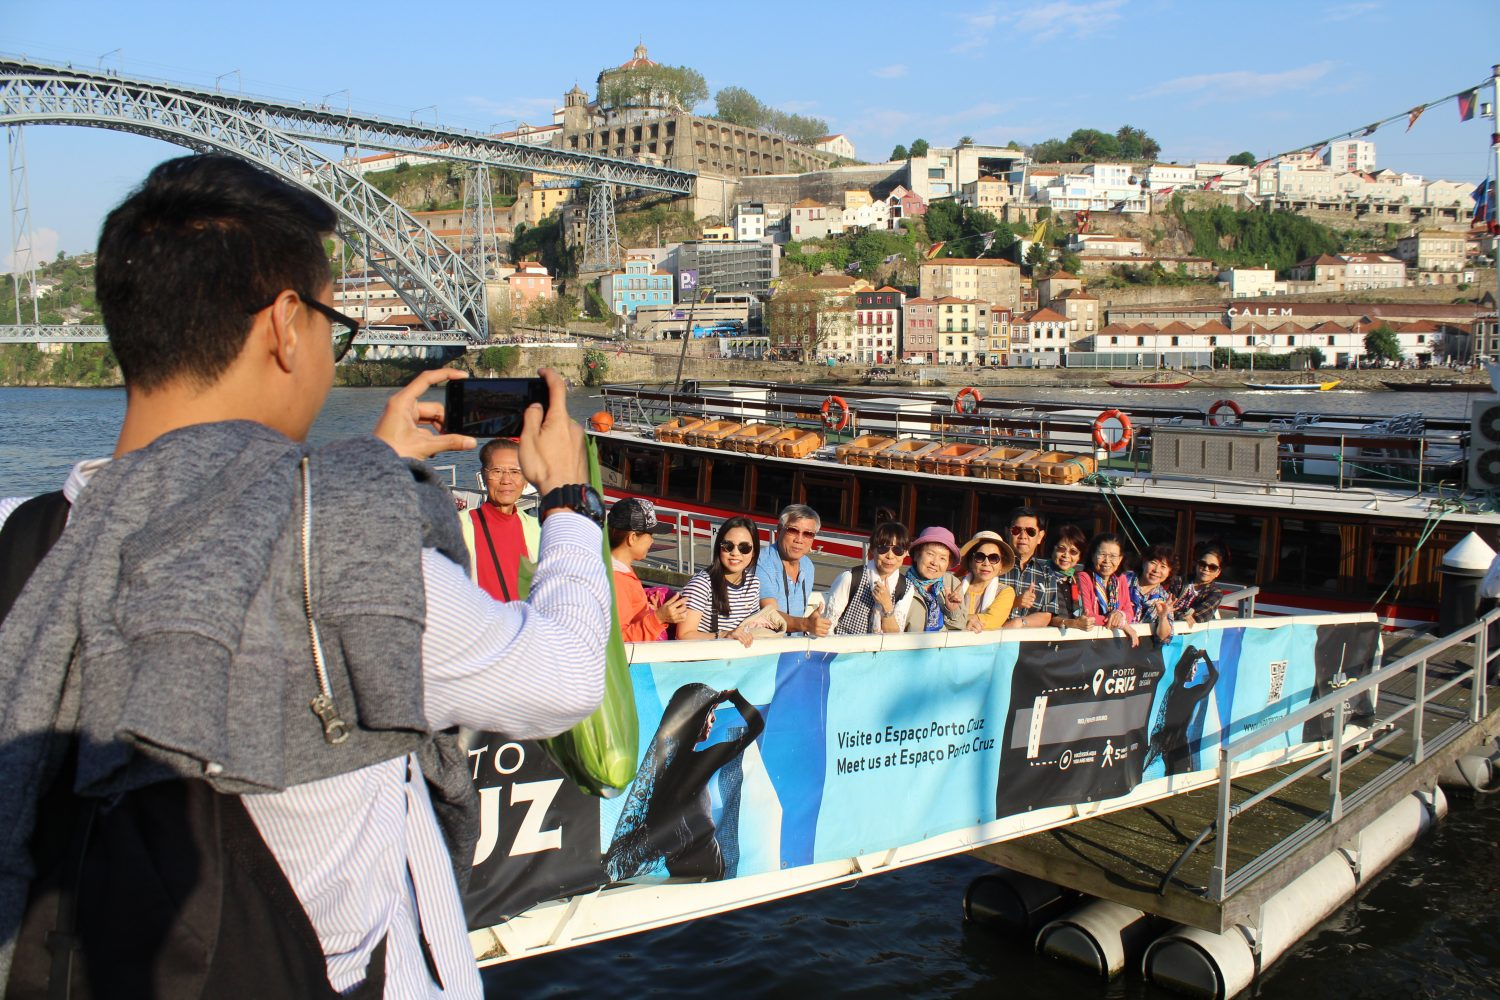 Group enter into Douro cruise with lunch or dinner on board